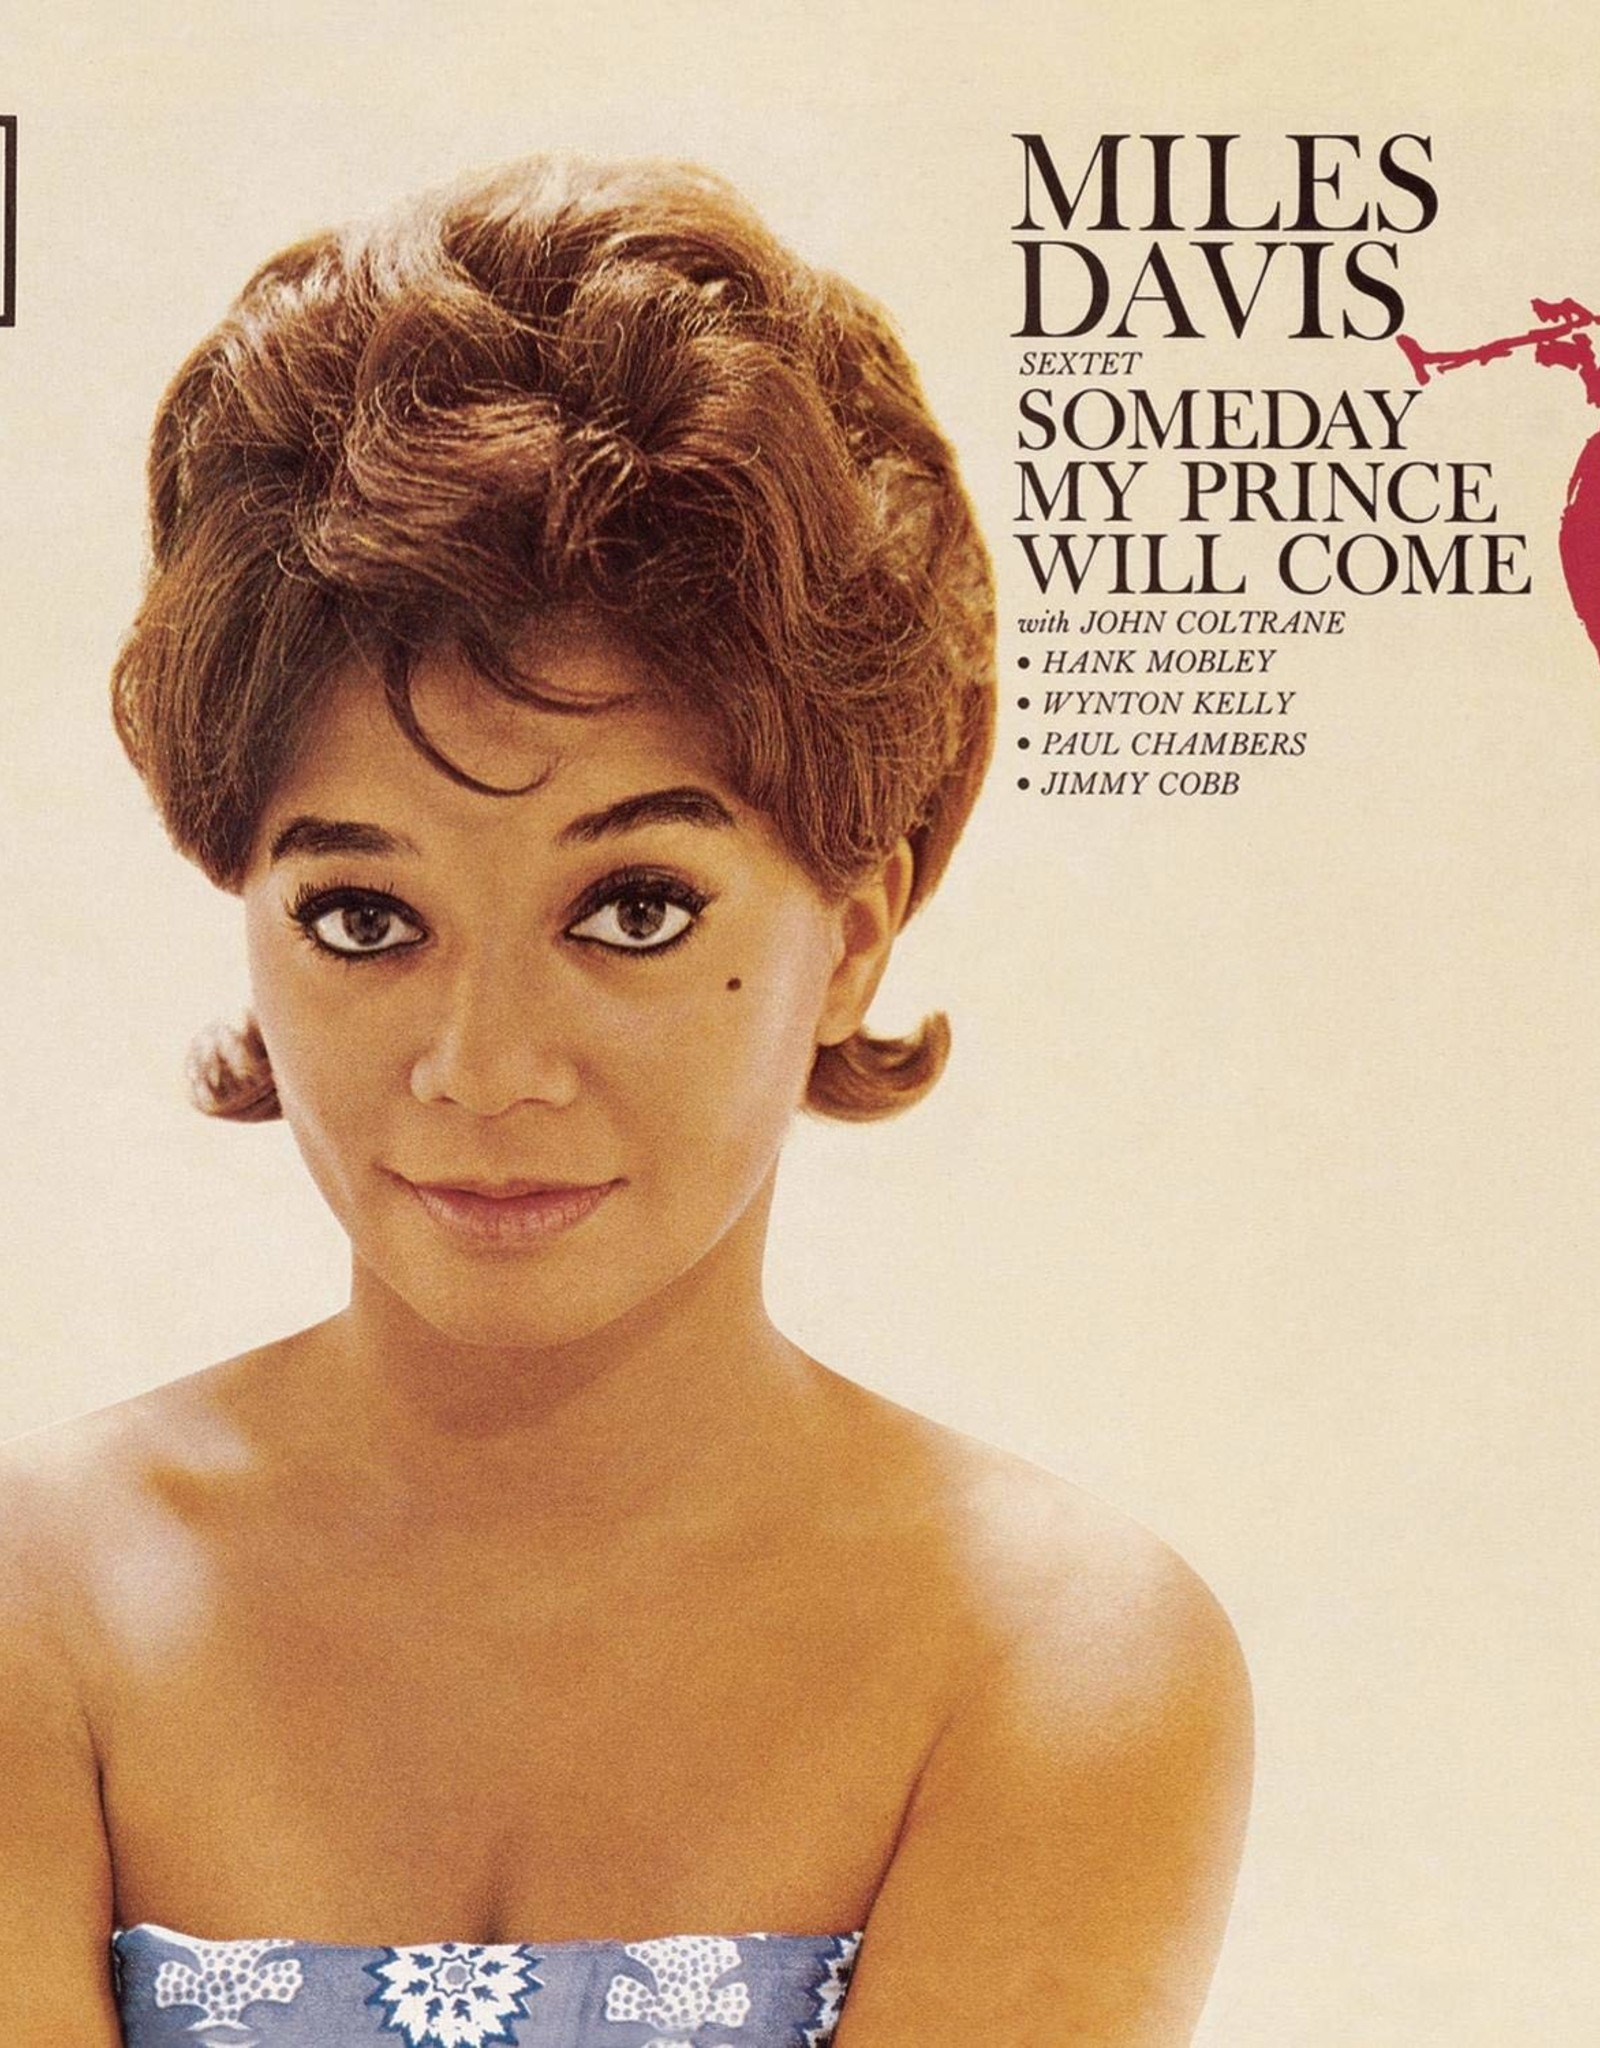 Miles Davis - Someday My Prince Will Come - Mono